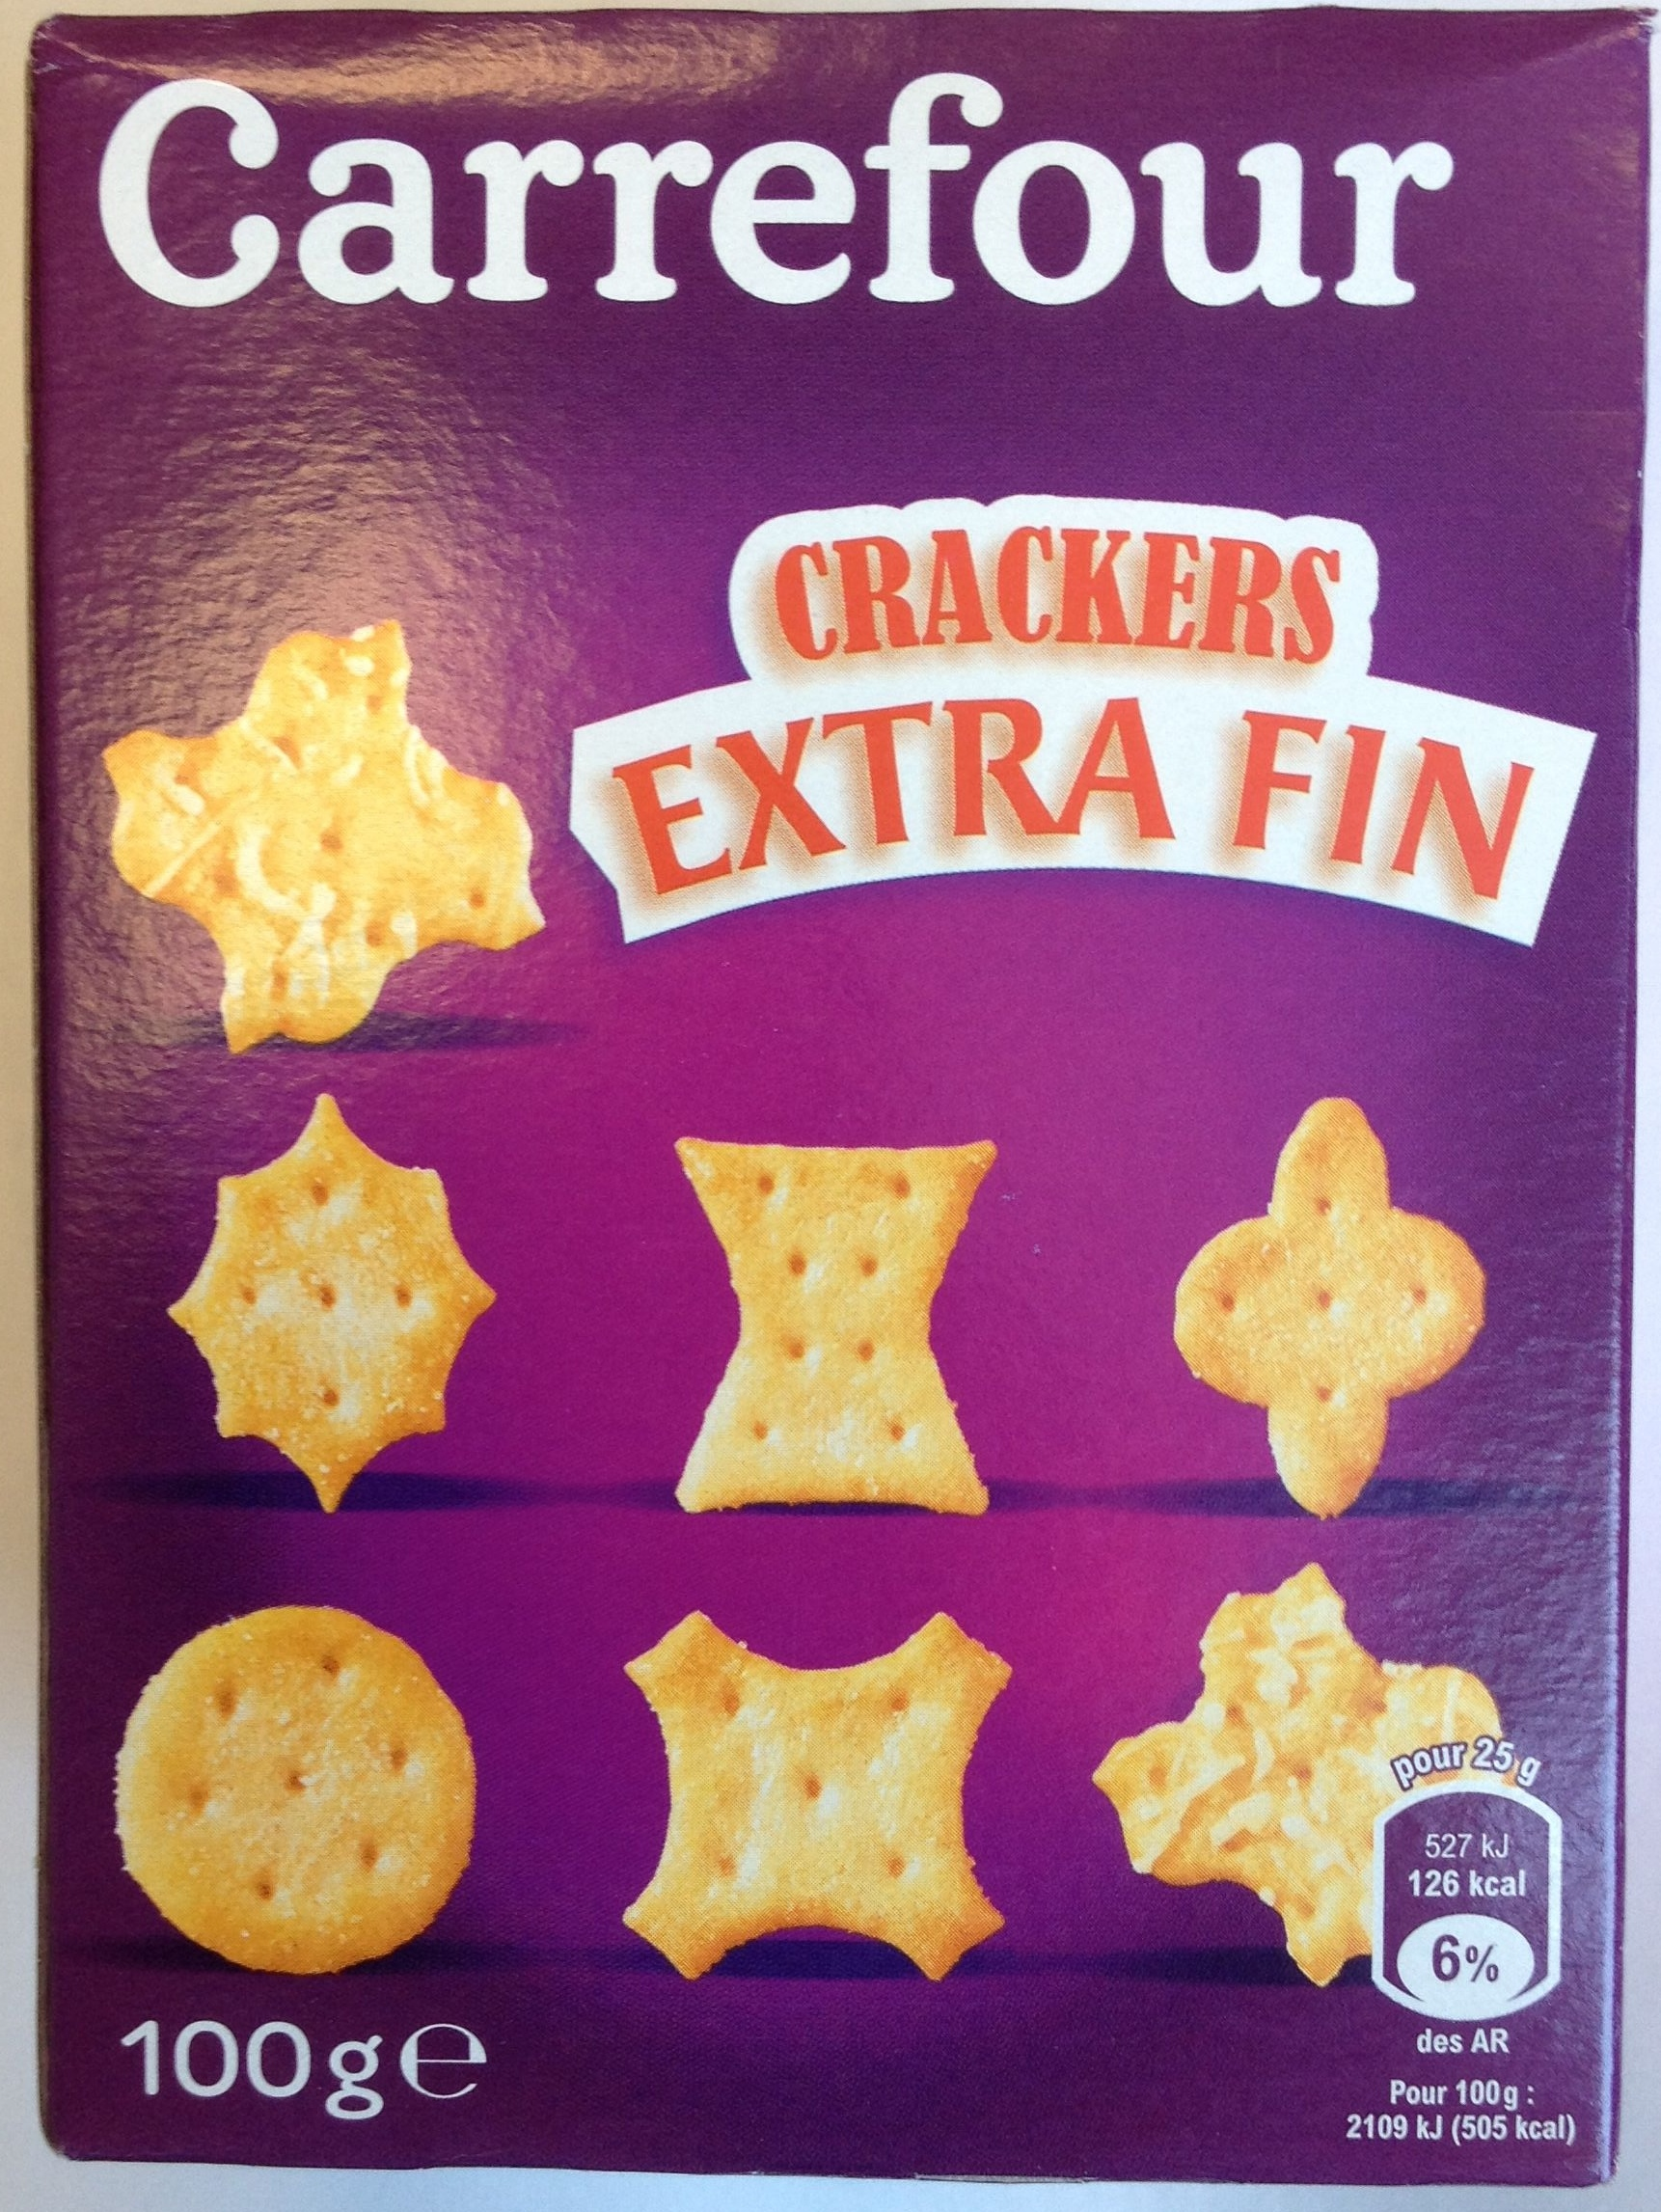 Crackers extra fin - Product - fr